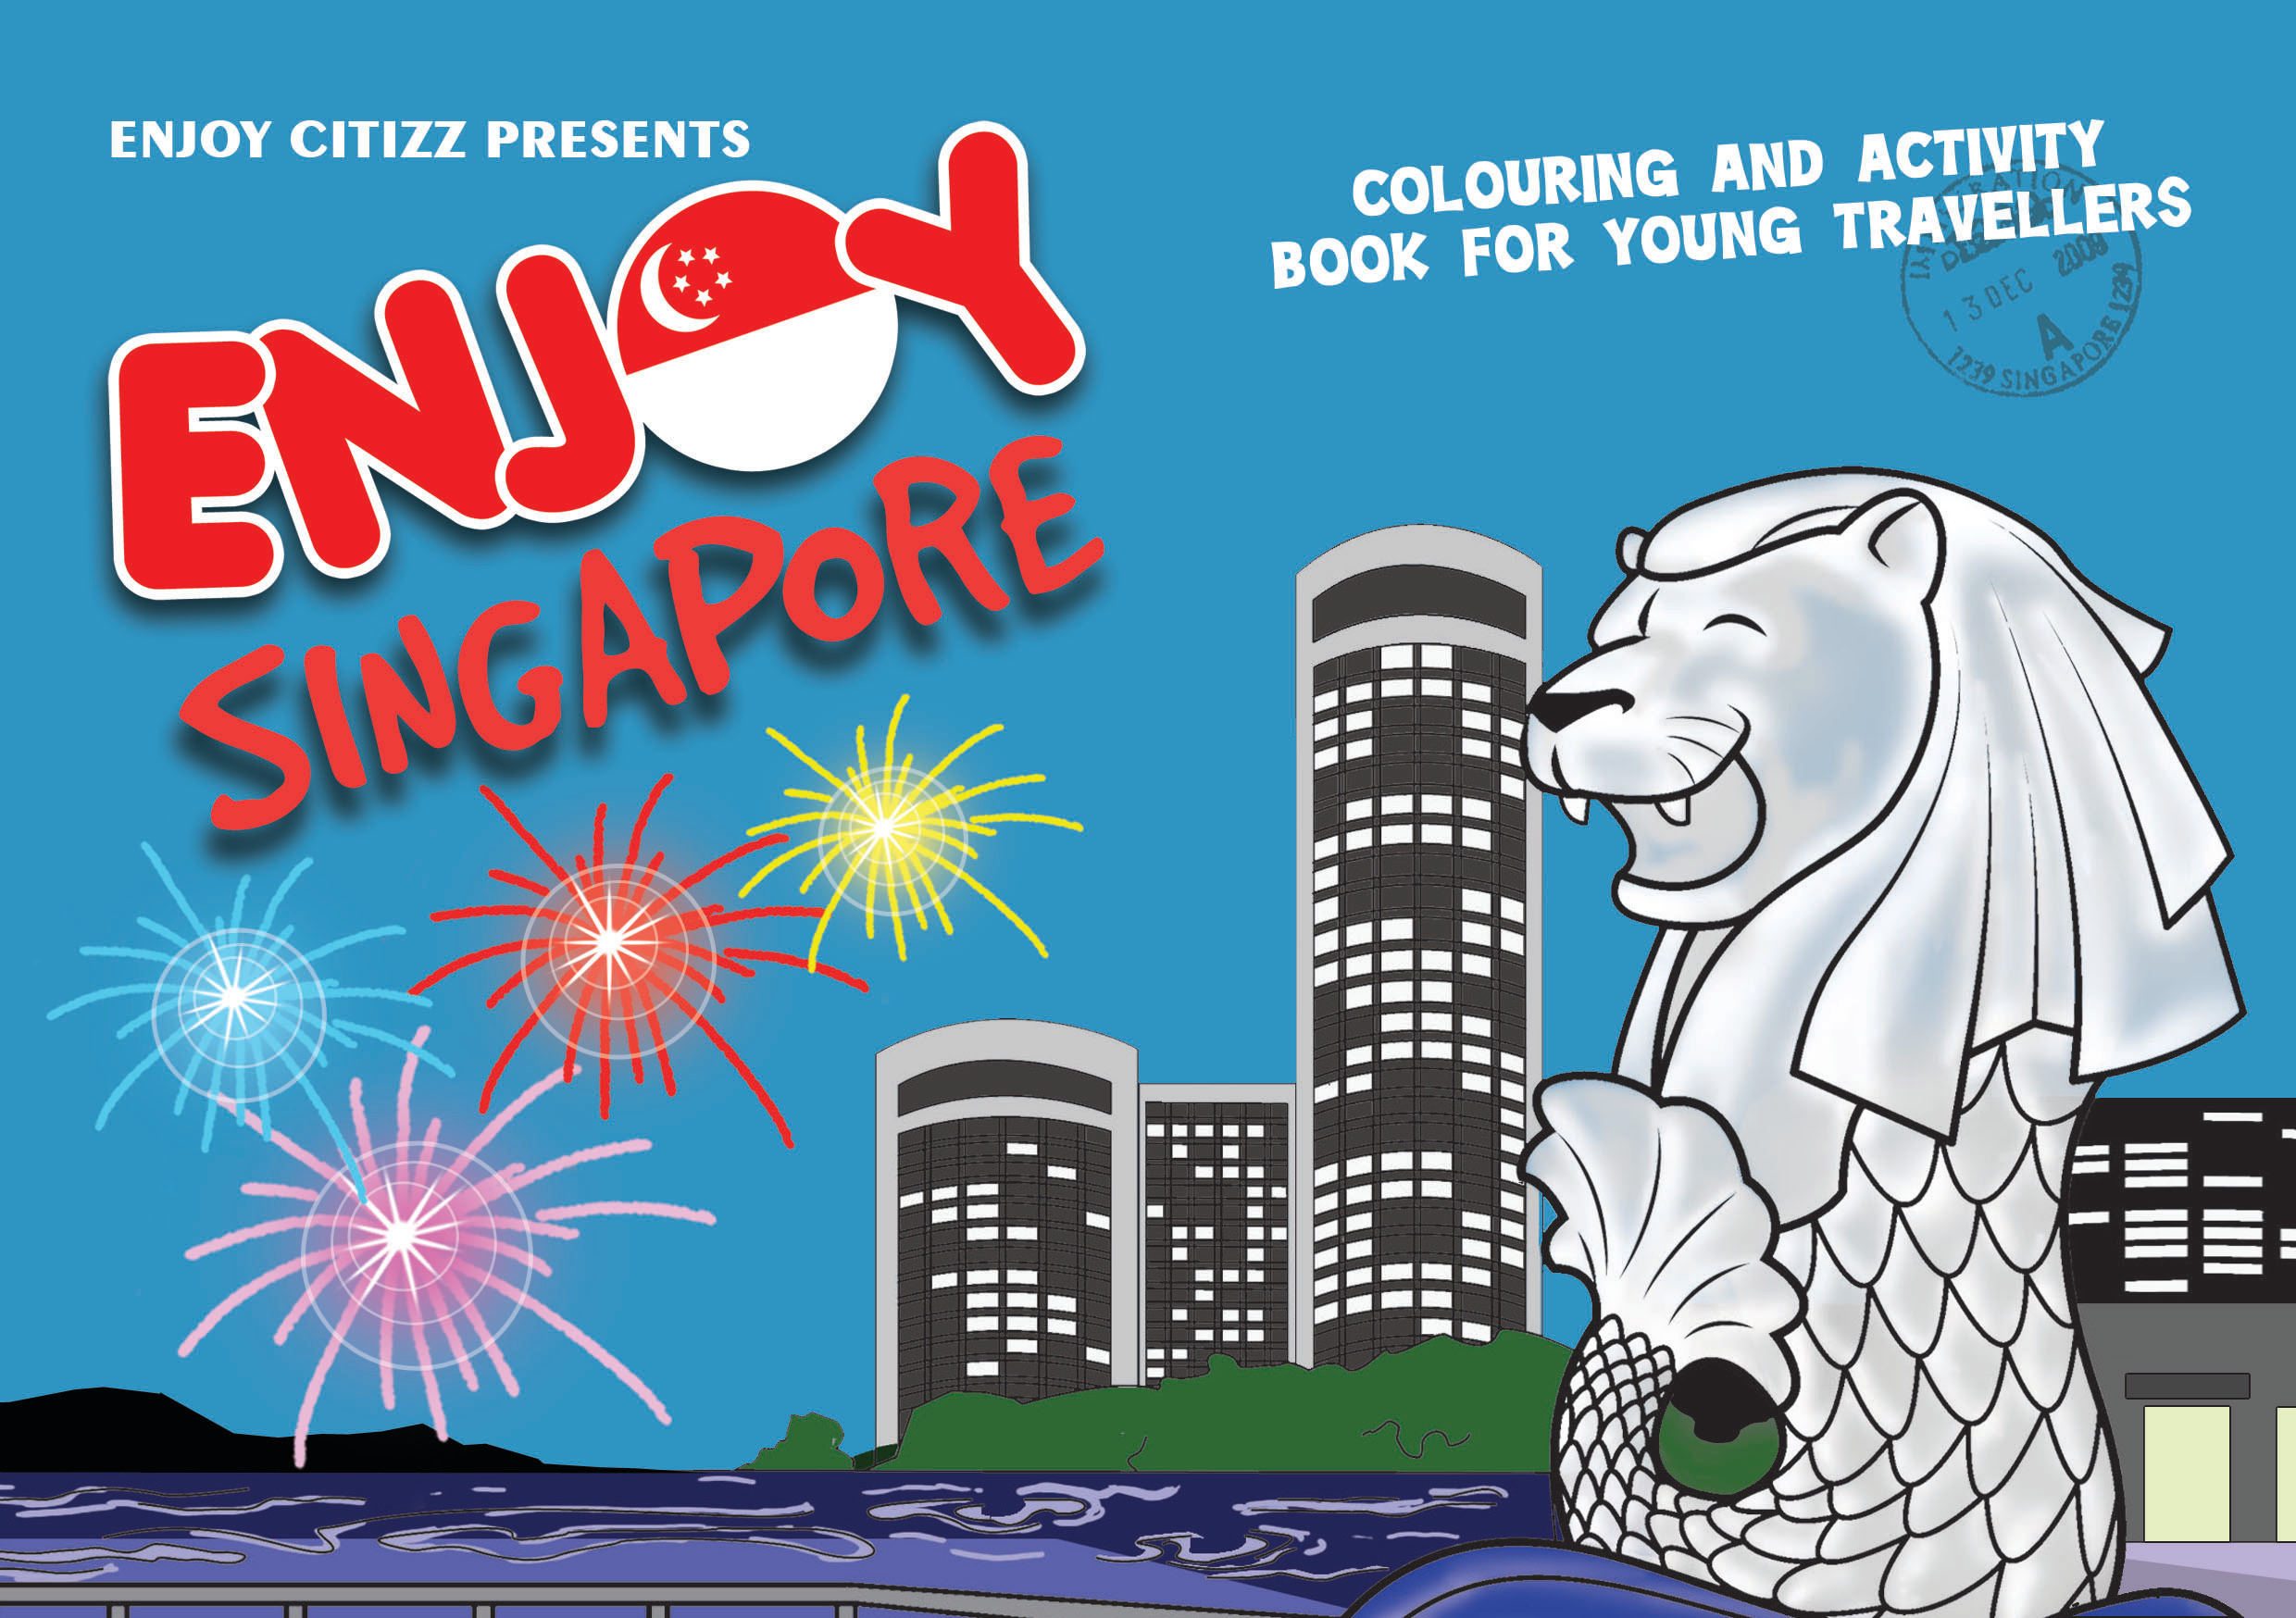 Enjoy citizz. Enjoy Singapore.